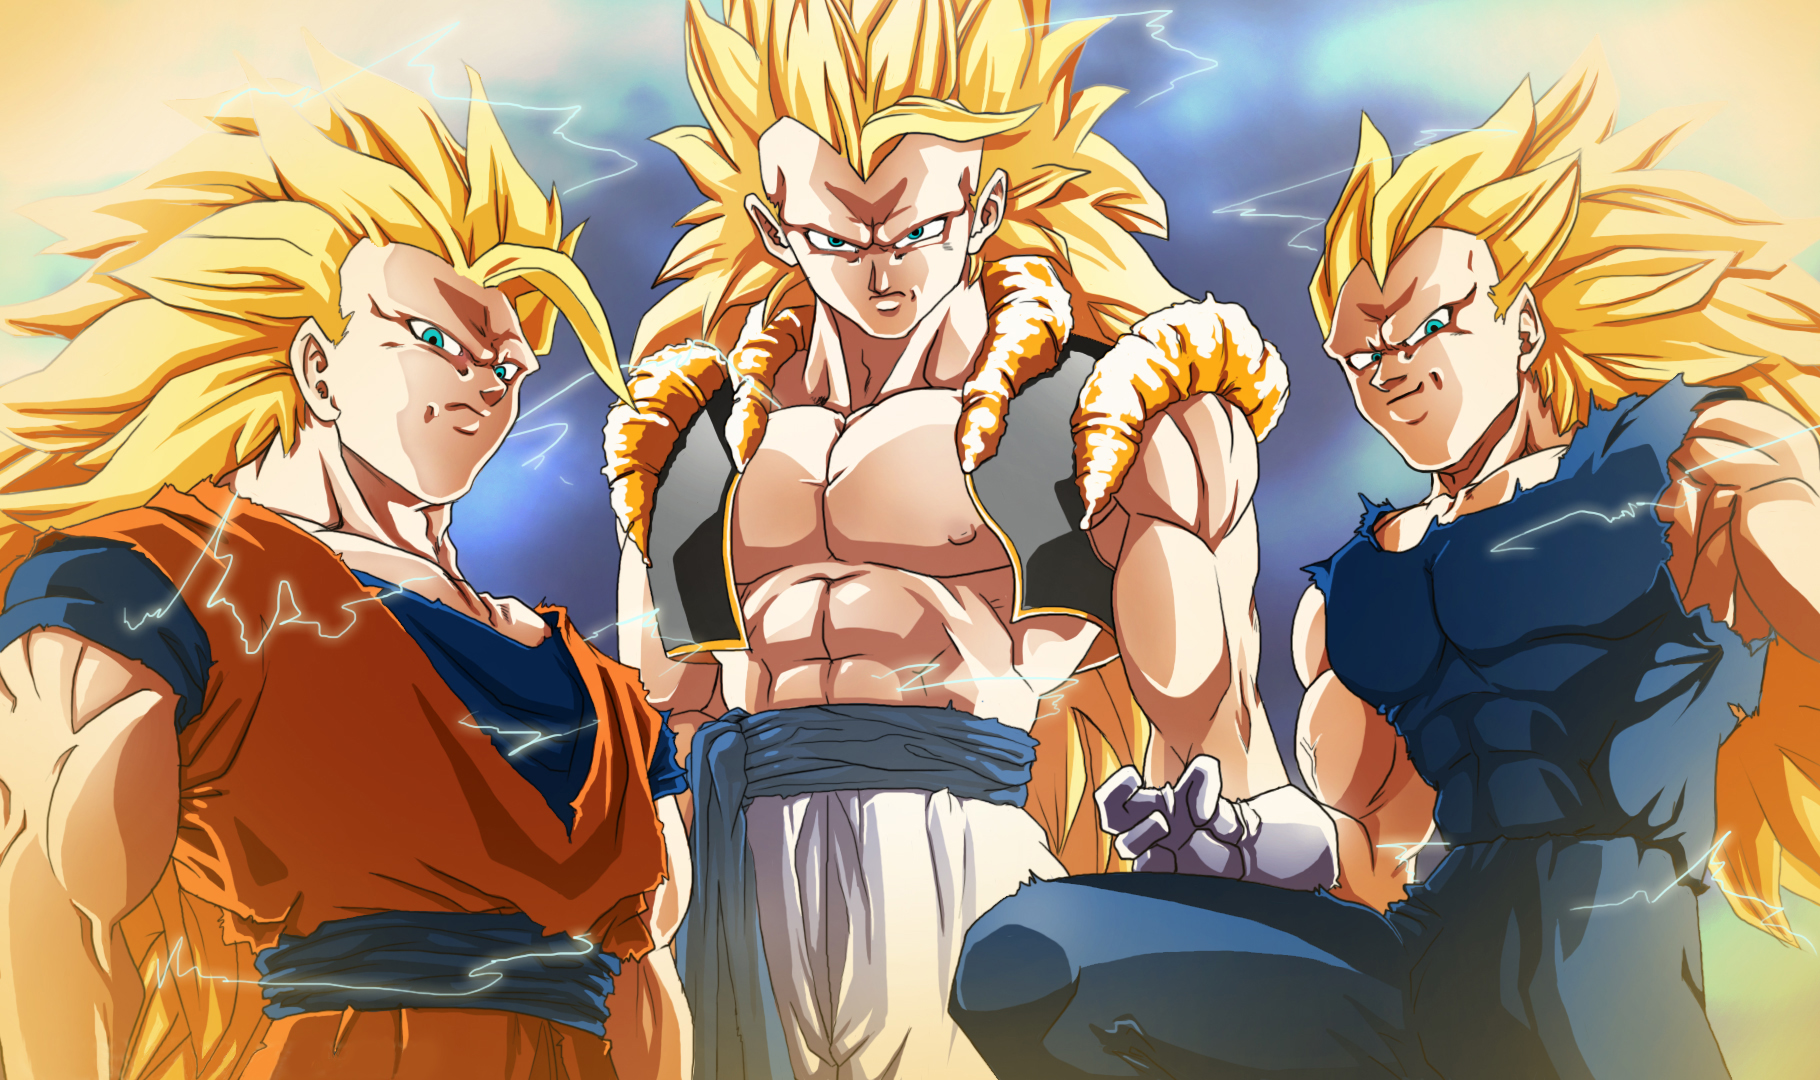 Emudshitz Features Another Update To Dragonball Unreal